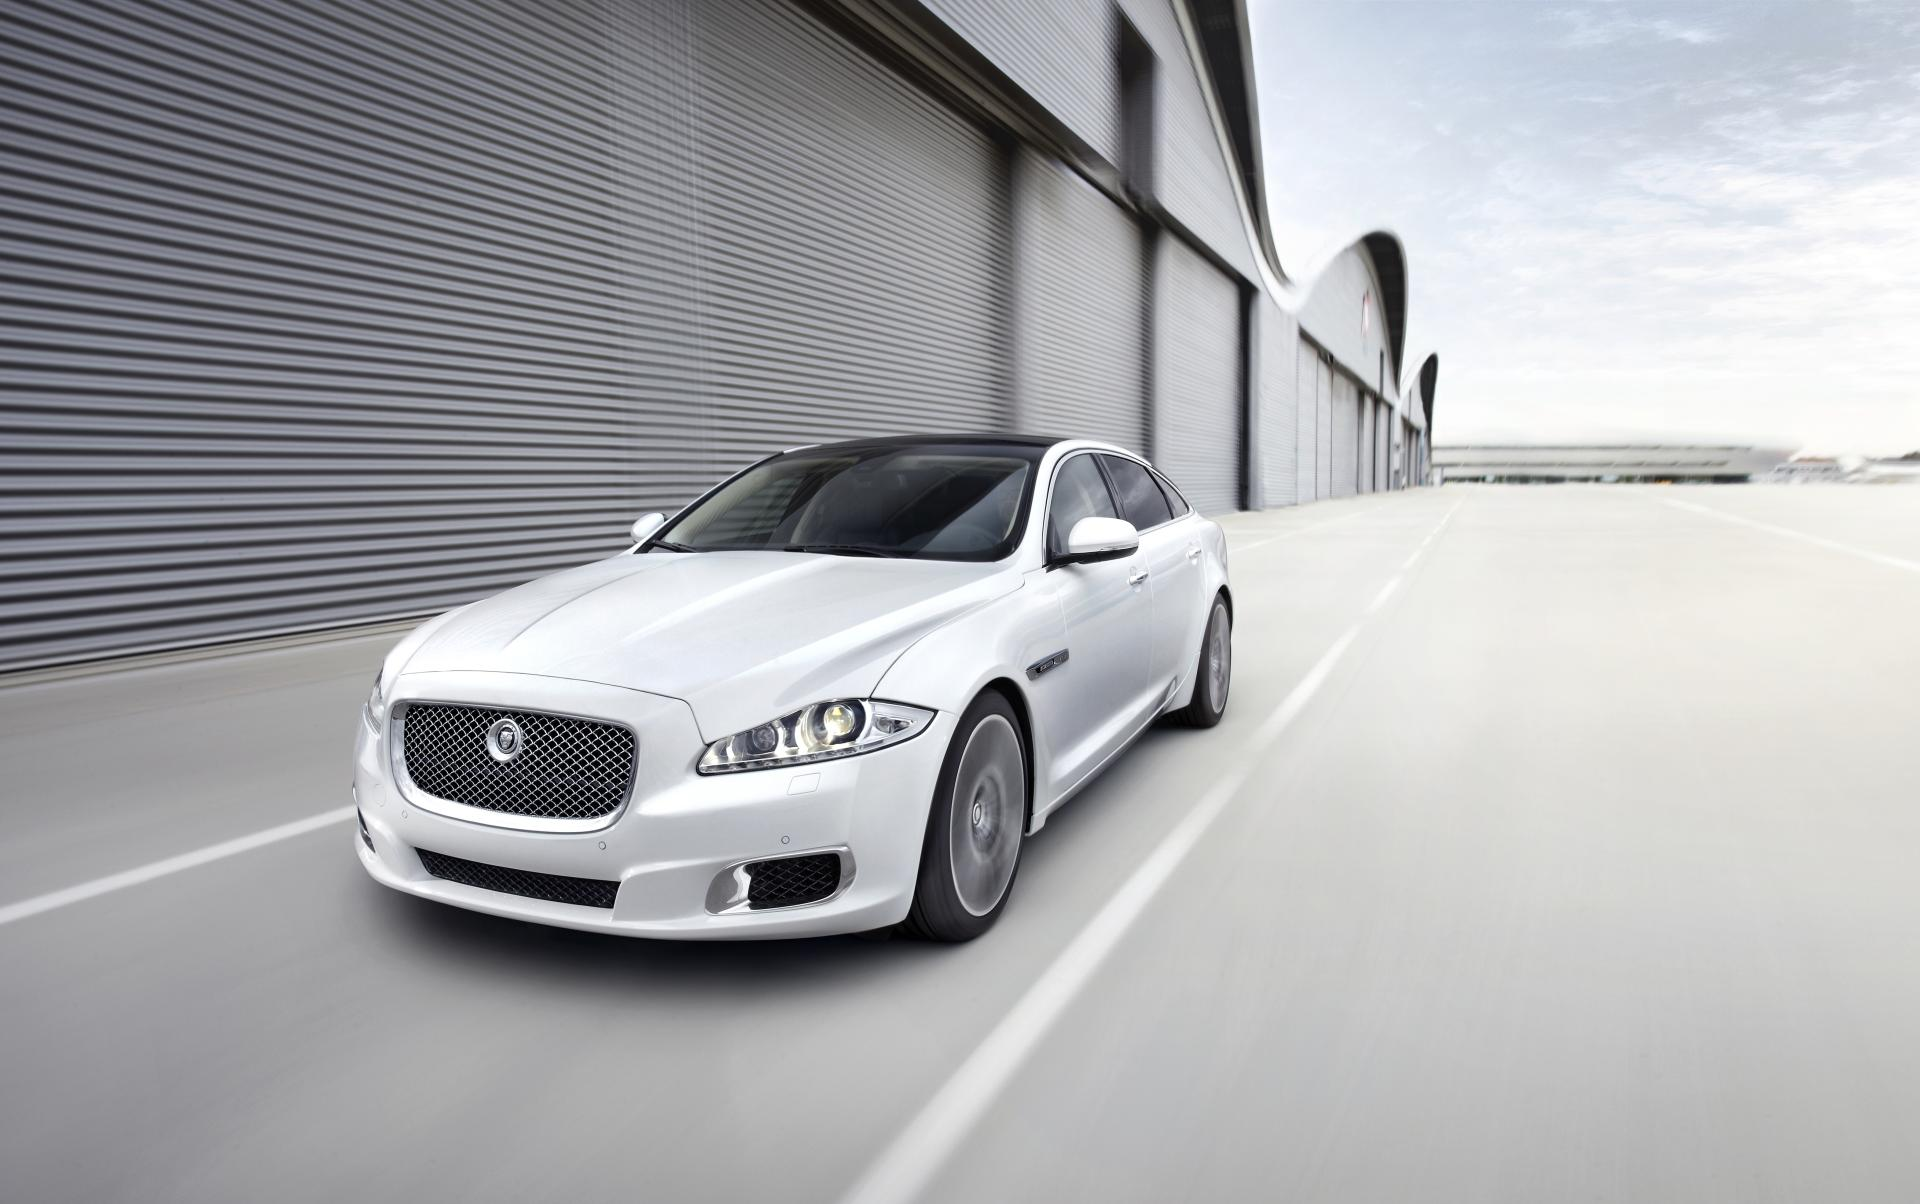 virtual for jaguar in a reality vr sales car as zyran prices increase tool author epiphany blog